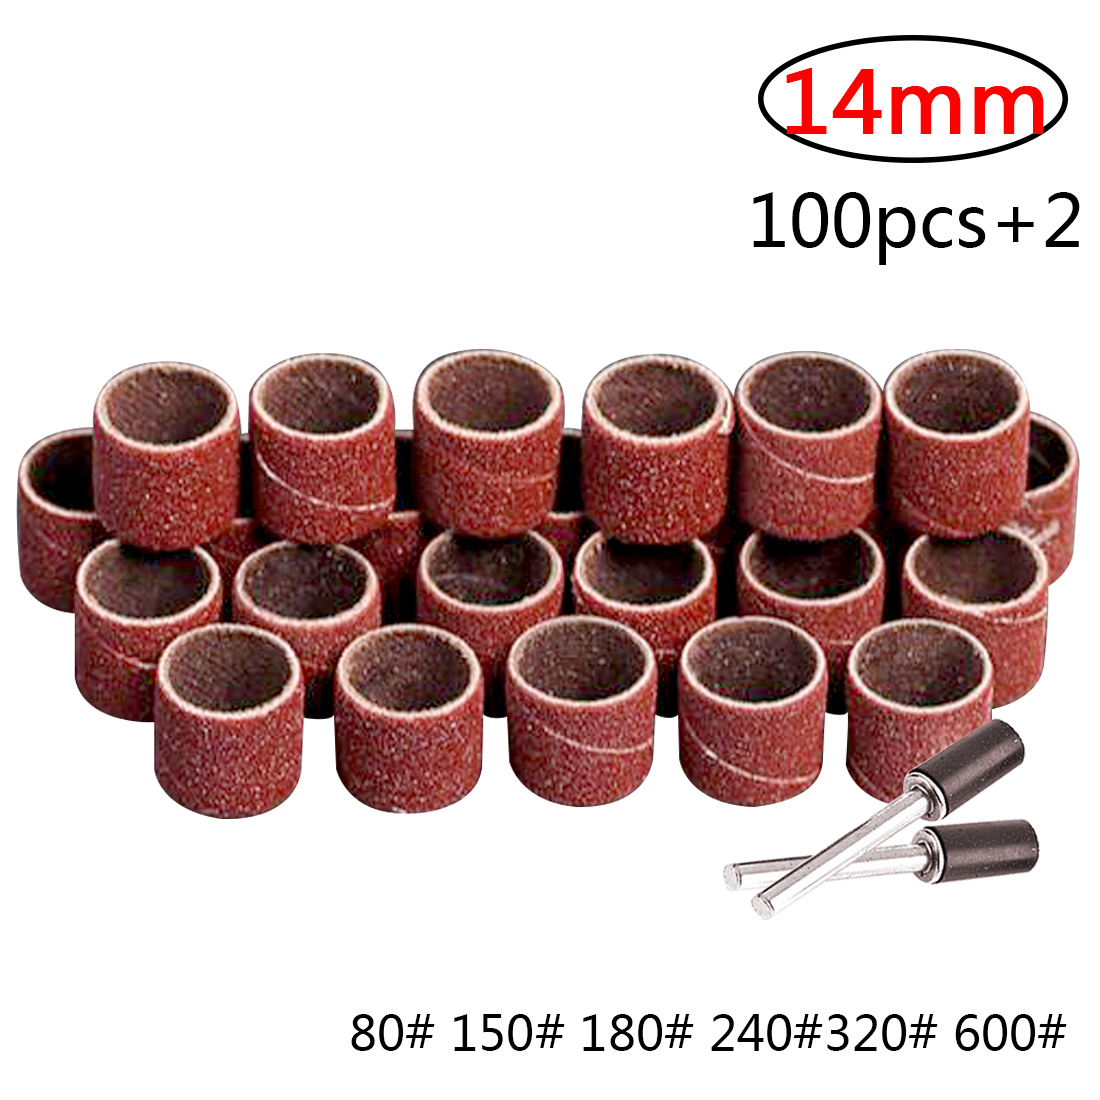 Nail Drill Bits Abrasive Tools 100 Pcs 14MM Drum Sanding Kit +2pcs Band Mandrel For Sand Shape Groove Wood Fiberglass Rotary Too